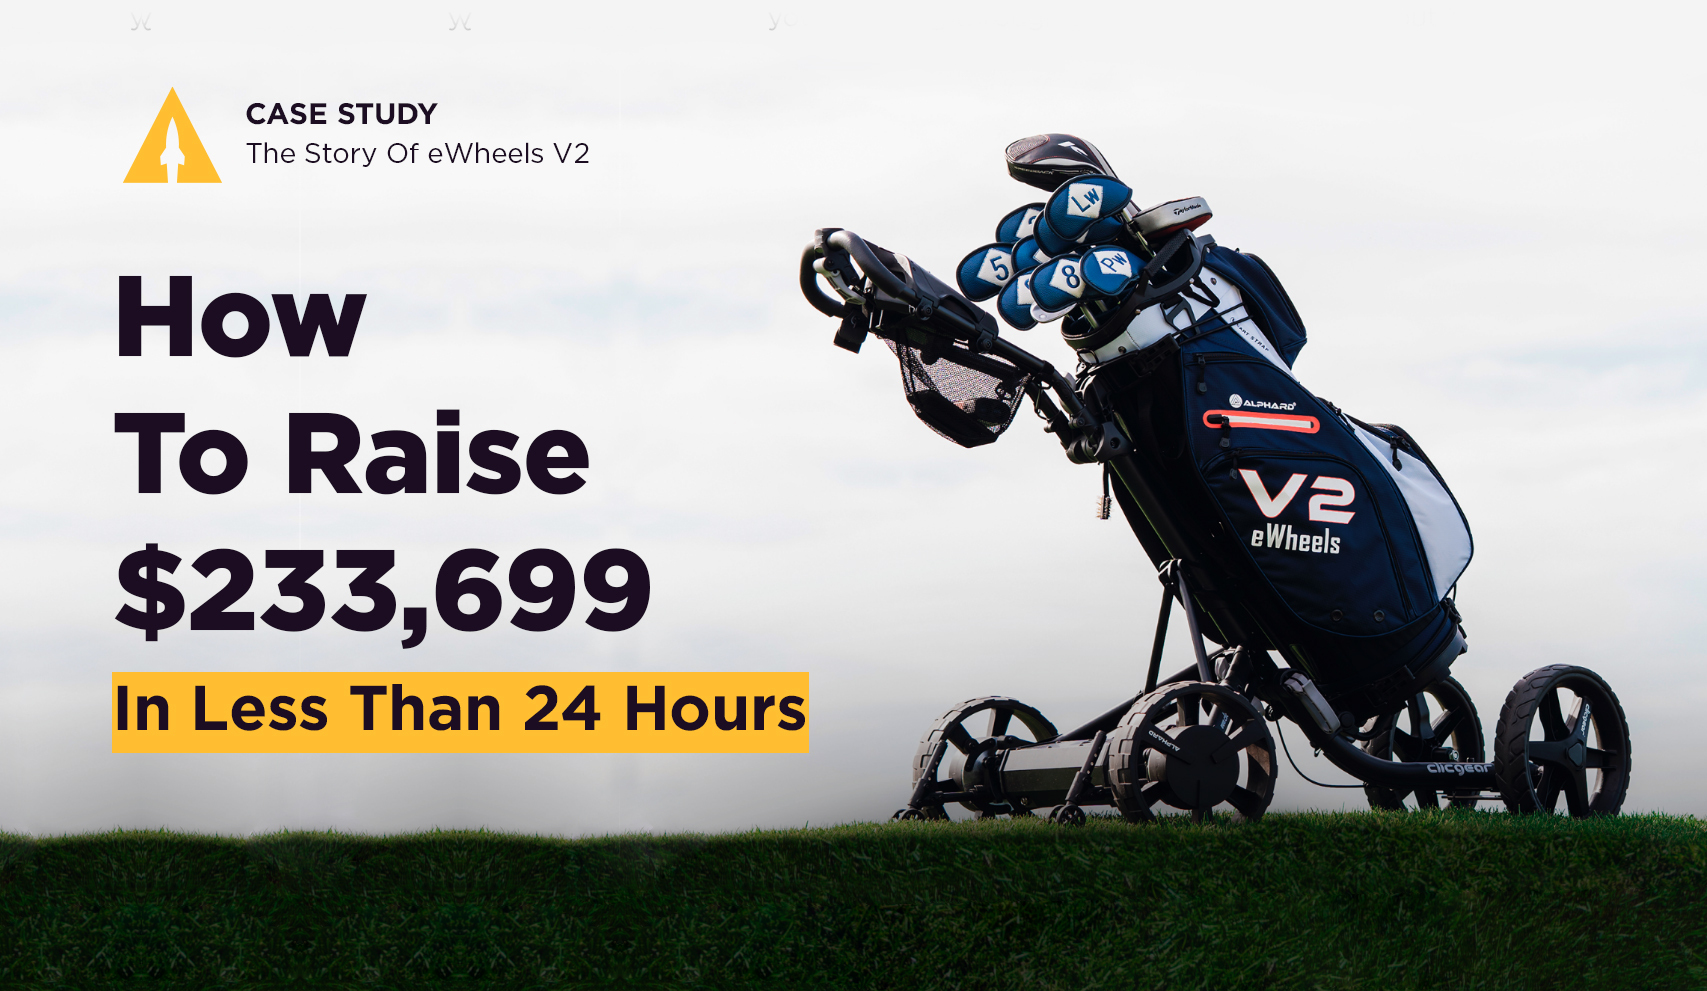 How To Raise $233,699 In Less Than 24 Hours: The Story Of eWheels v2 [CASE STUDY]